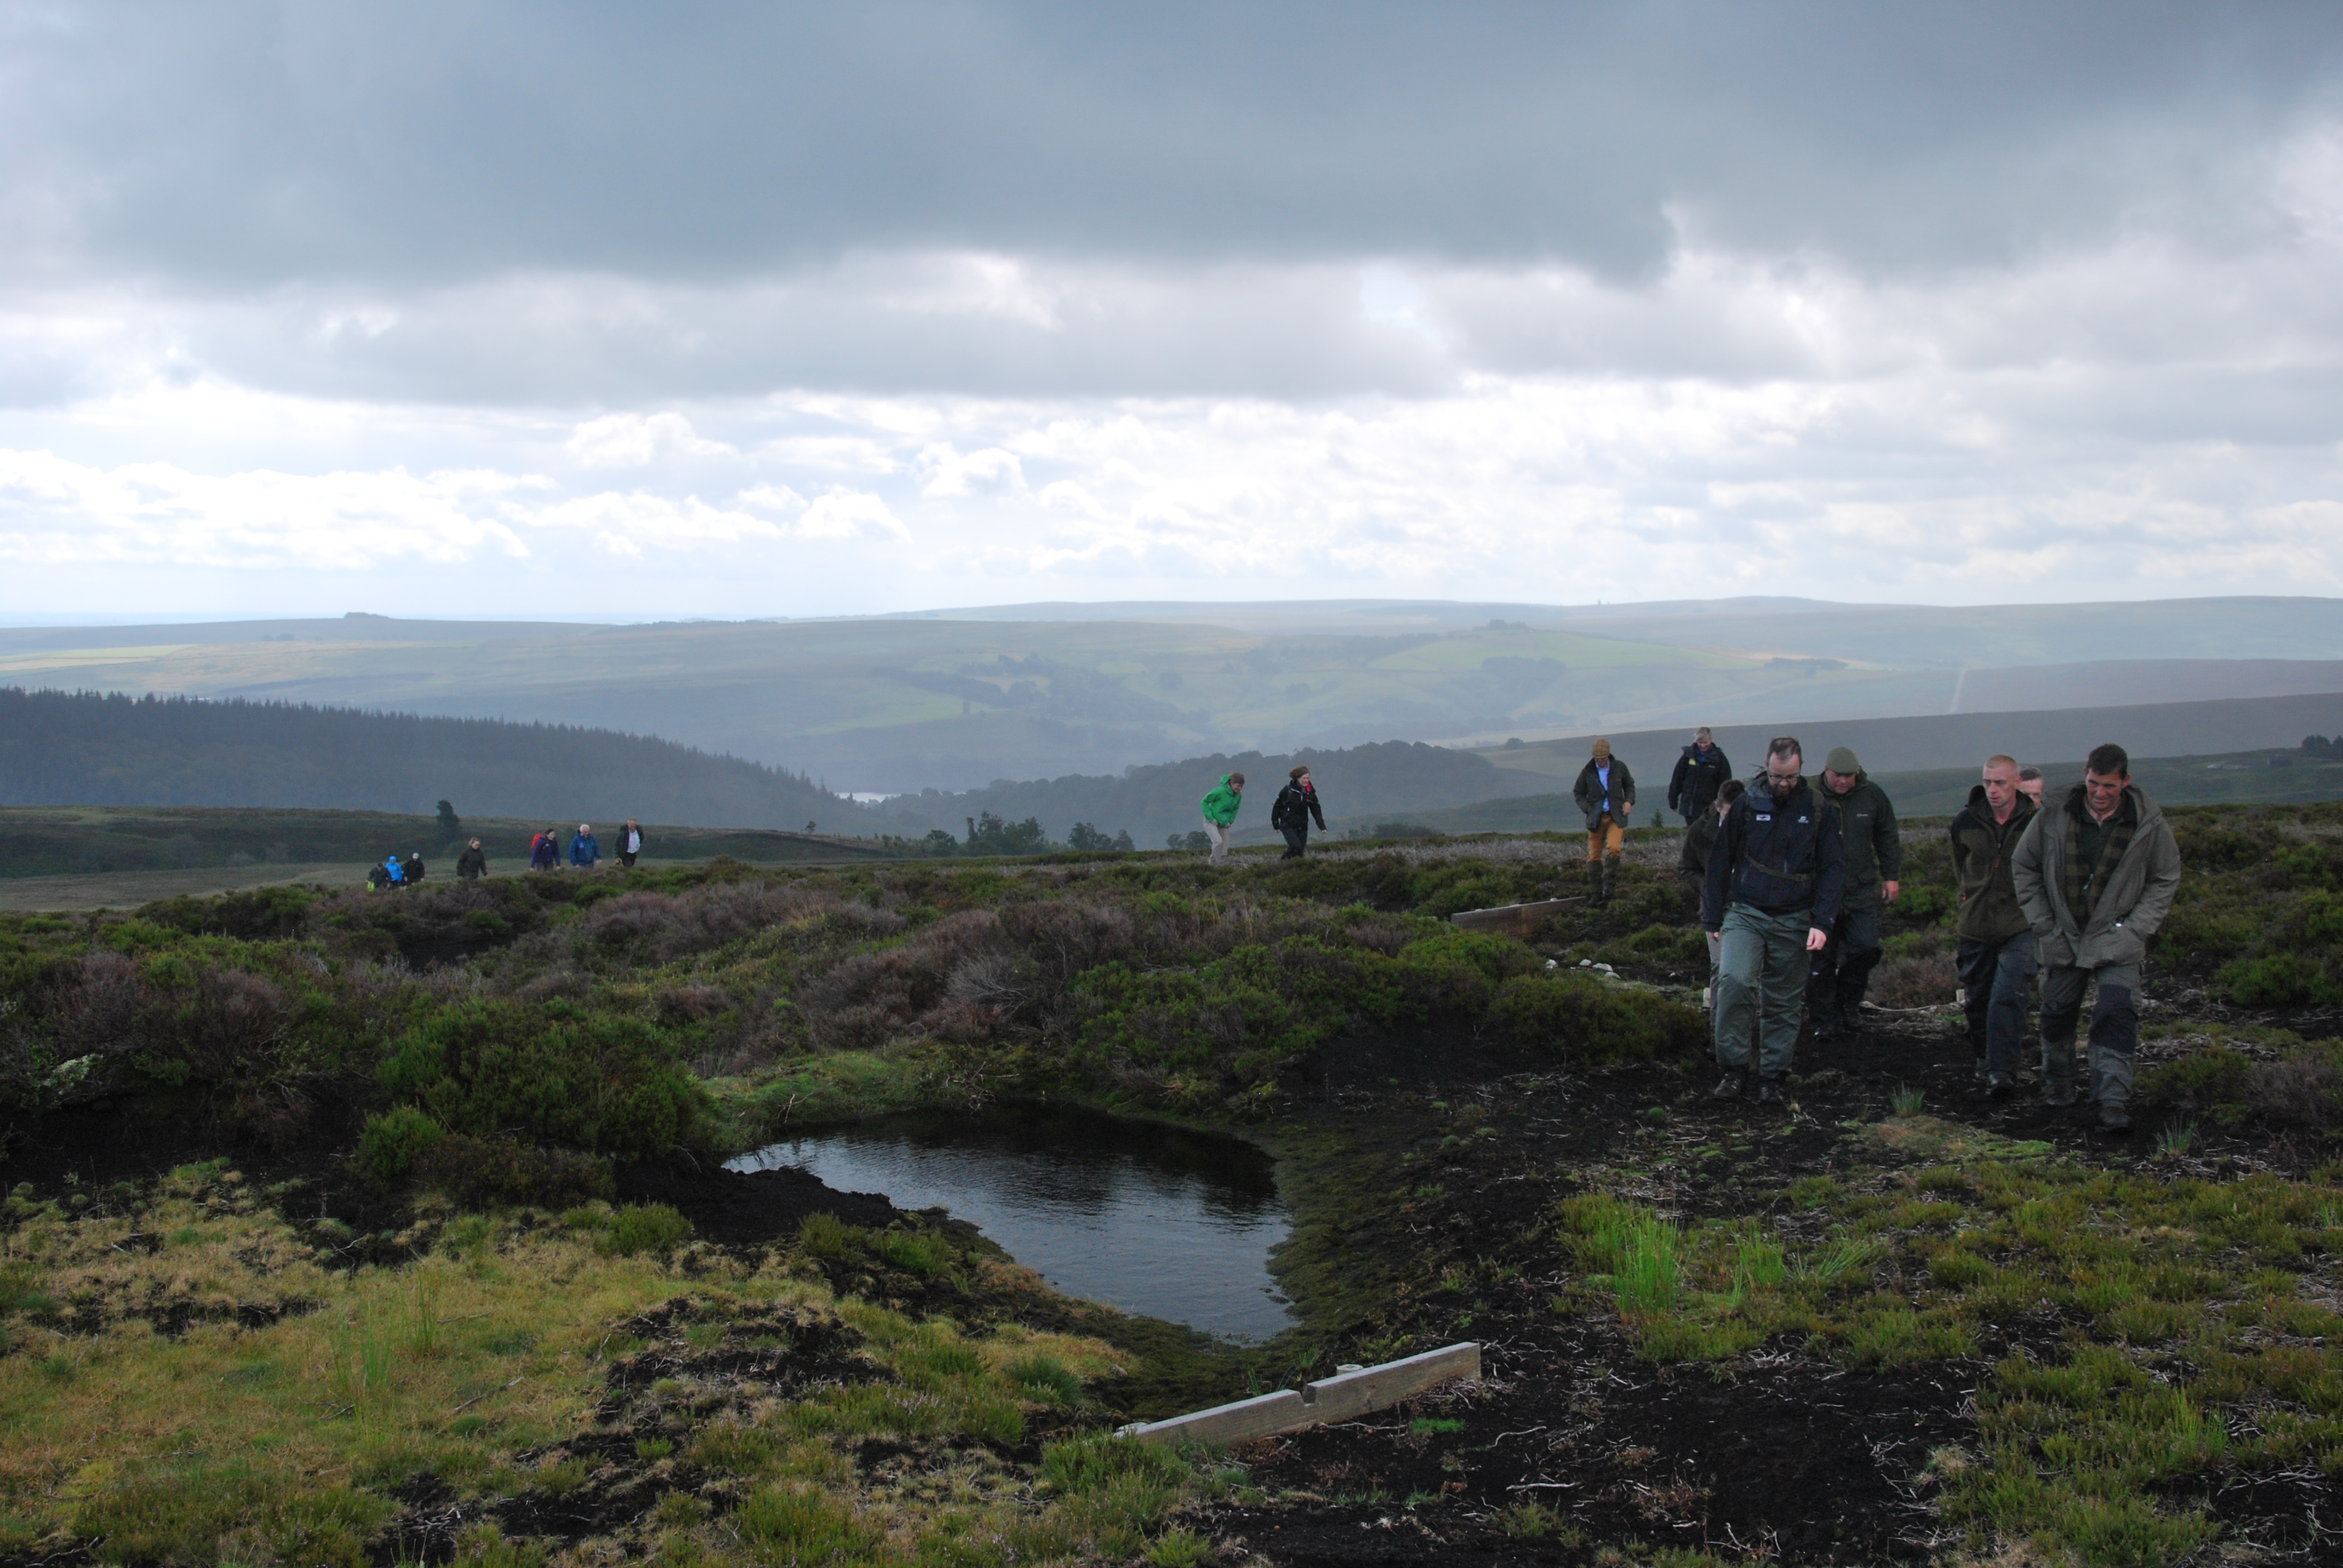 The Heather Trust Conference in the Peak District on Bradfield Moor